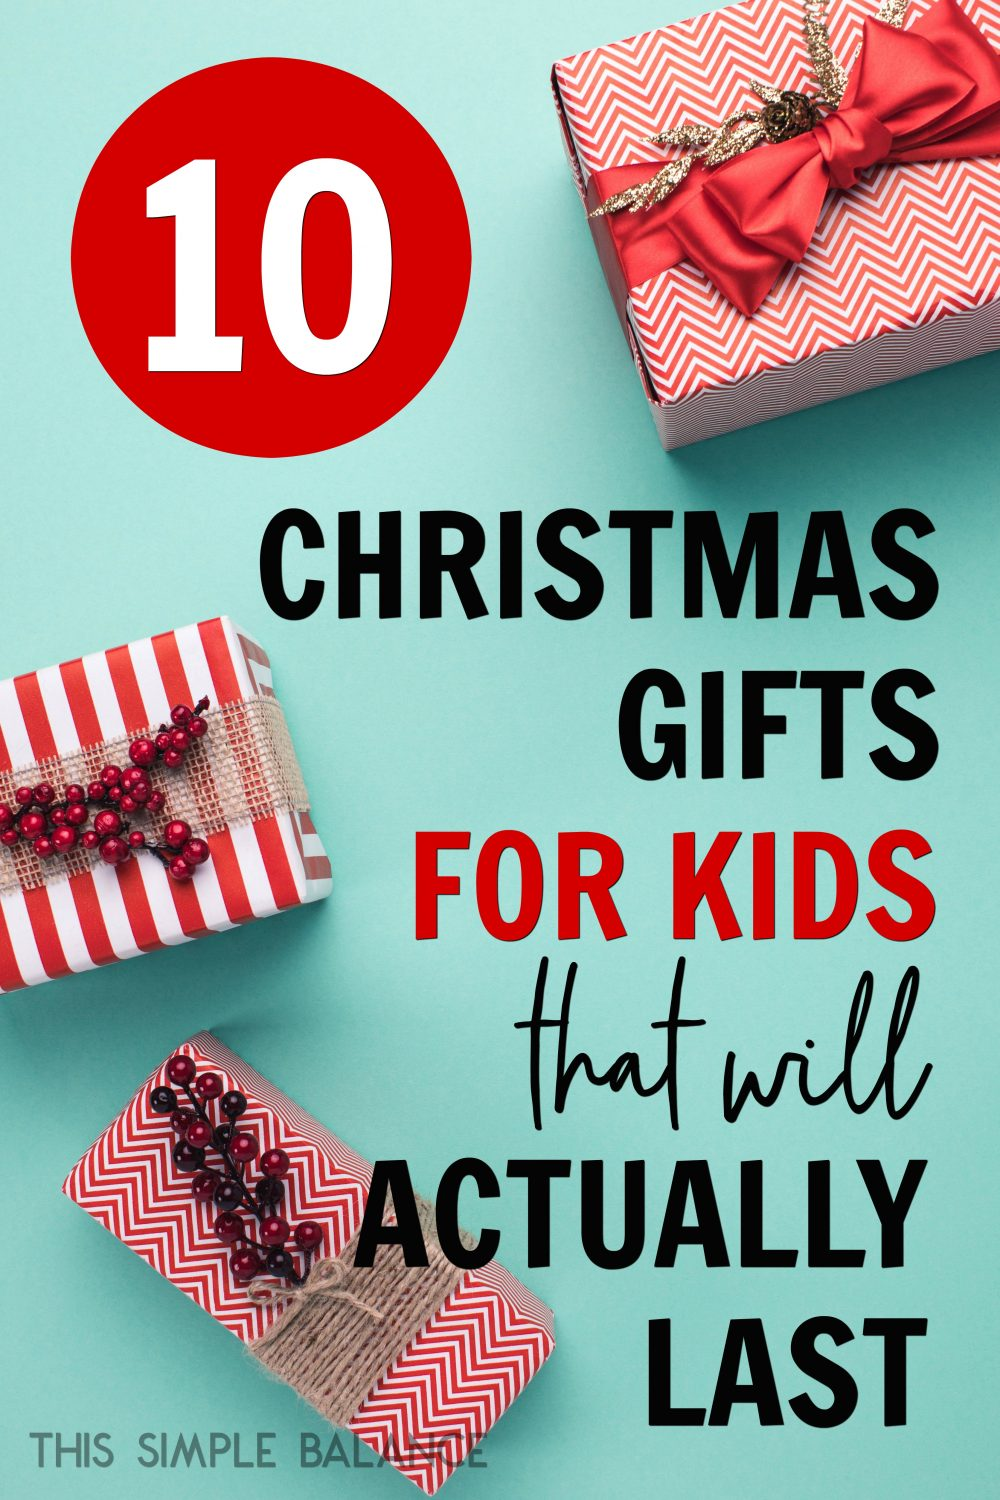 the best christmas gifts for kids 8 and under that will actually last months past christmas - Best Christmas Gifts For Kids